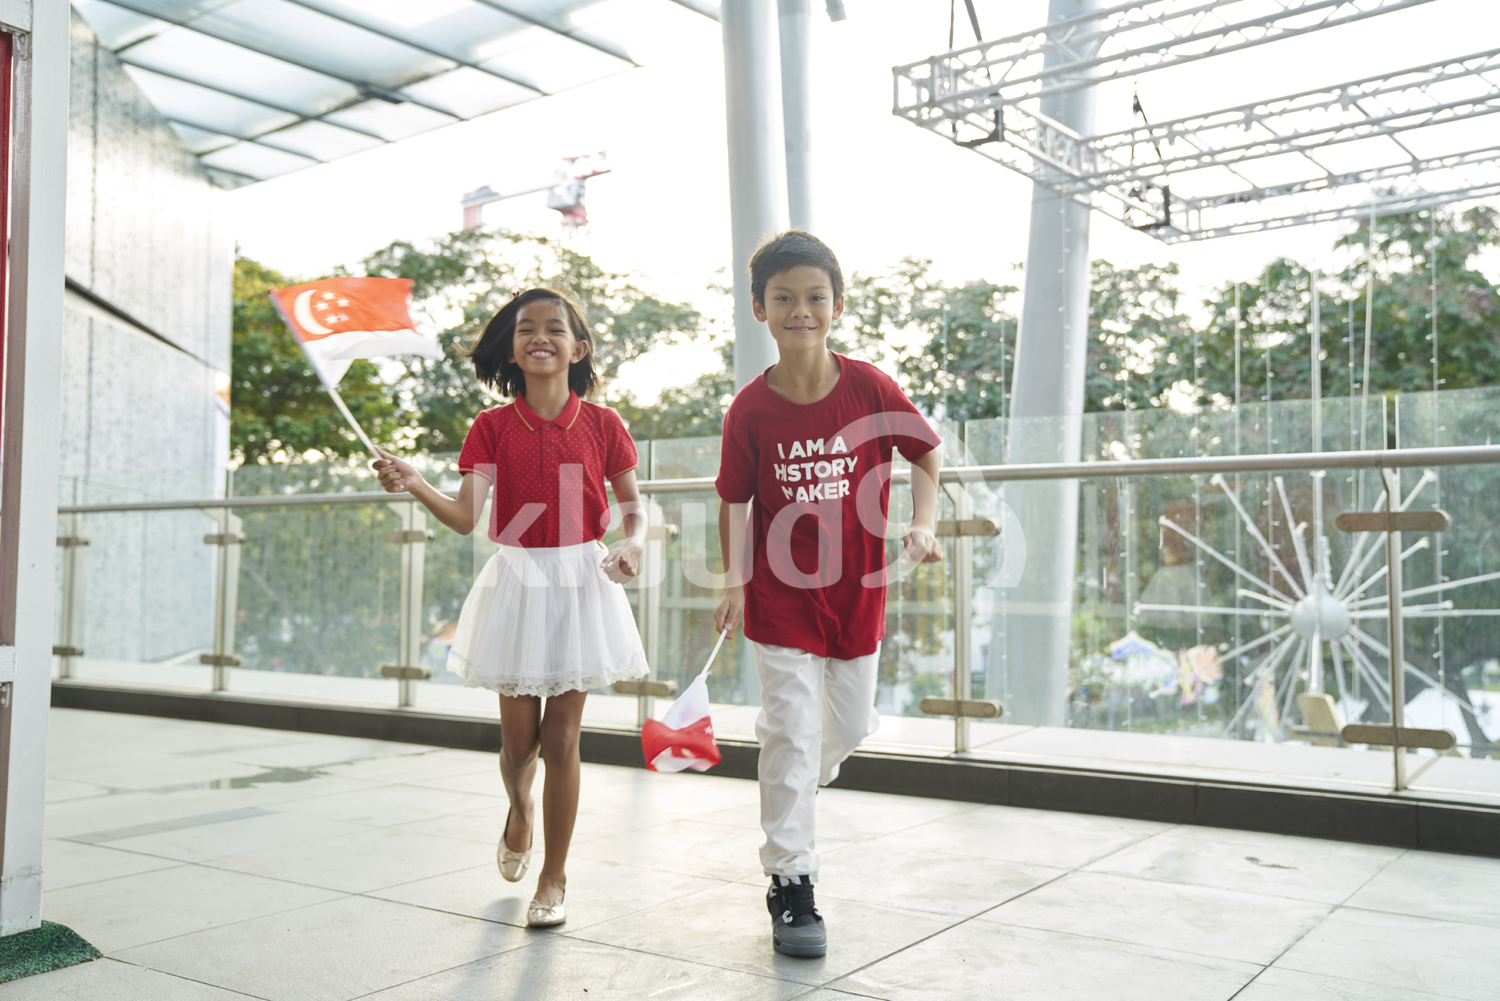 Playful siblings celebrating Singapore's National Day